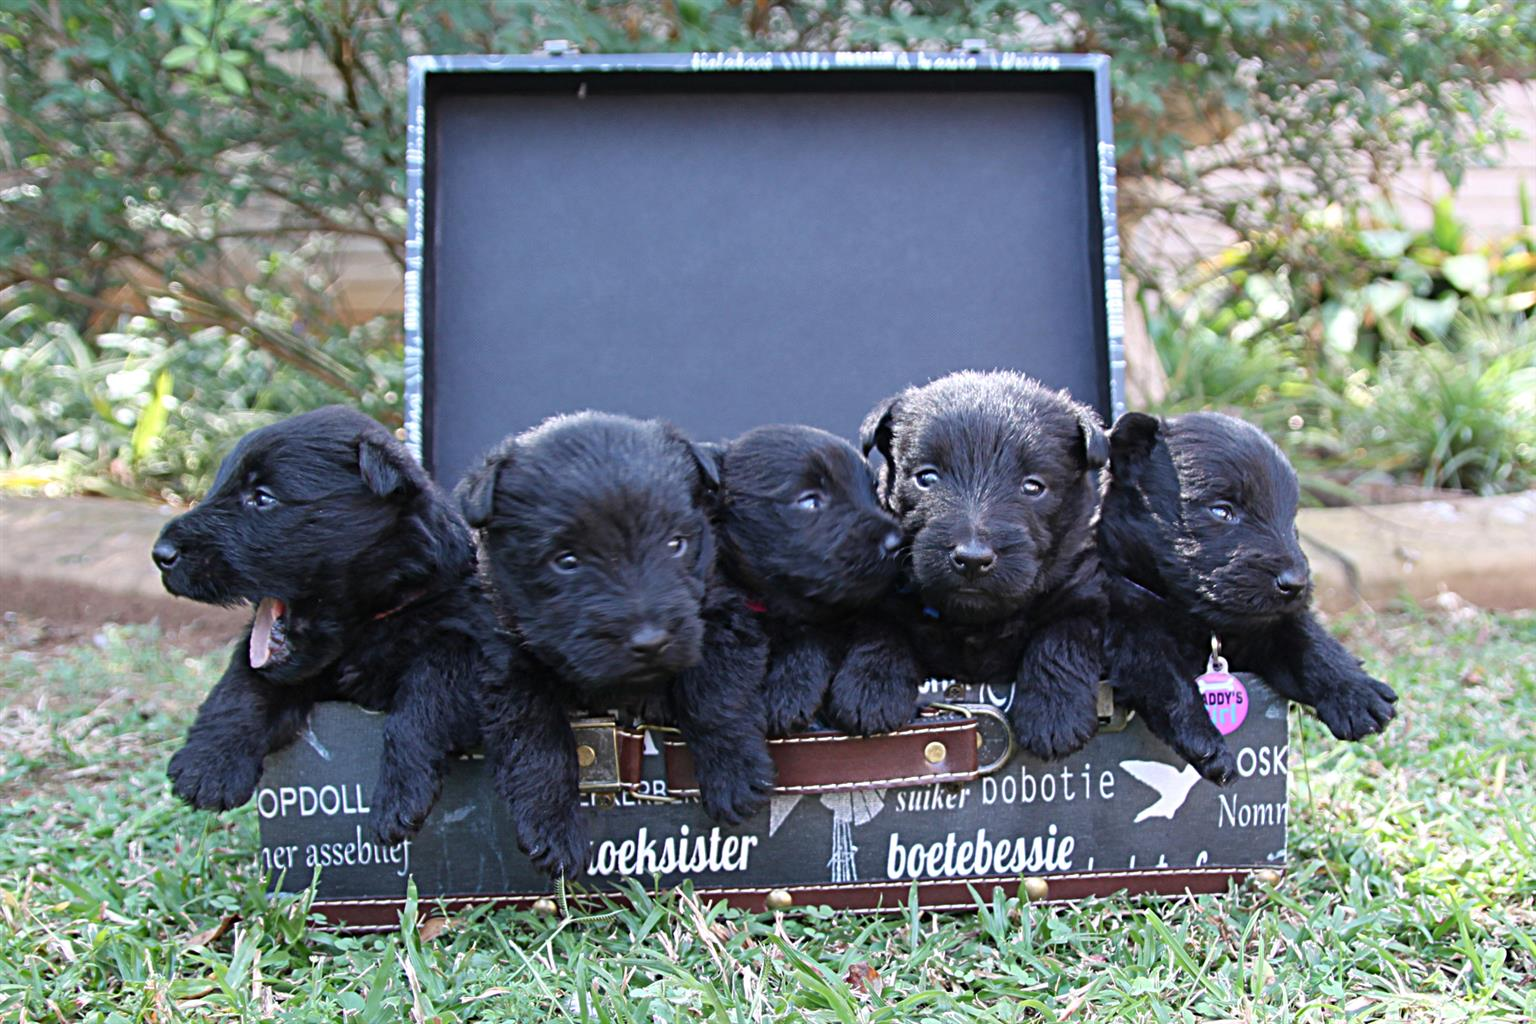 Scottish terrier babies